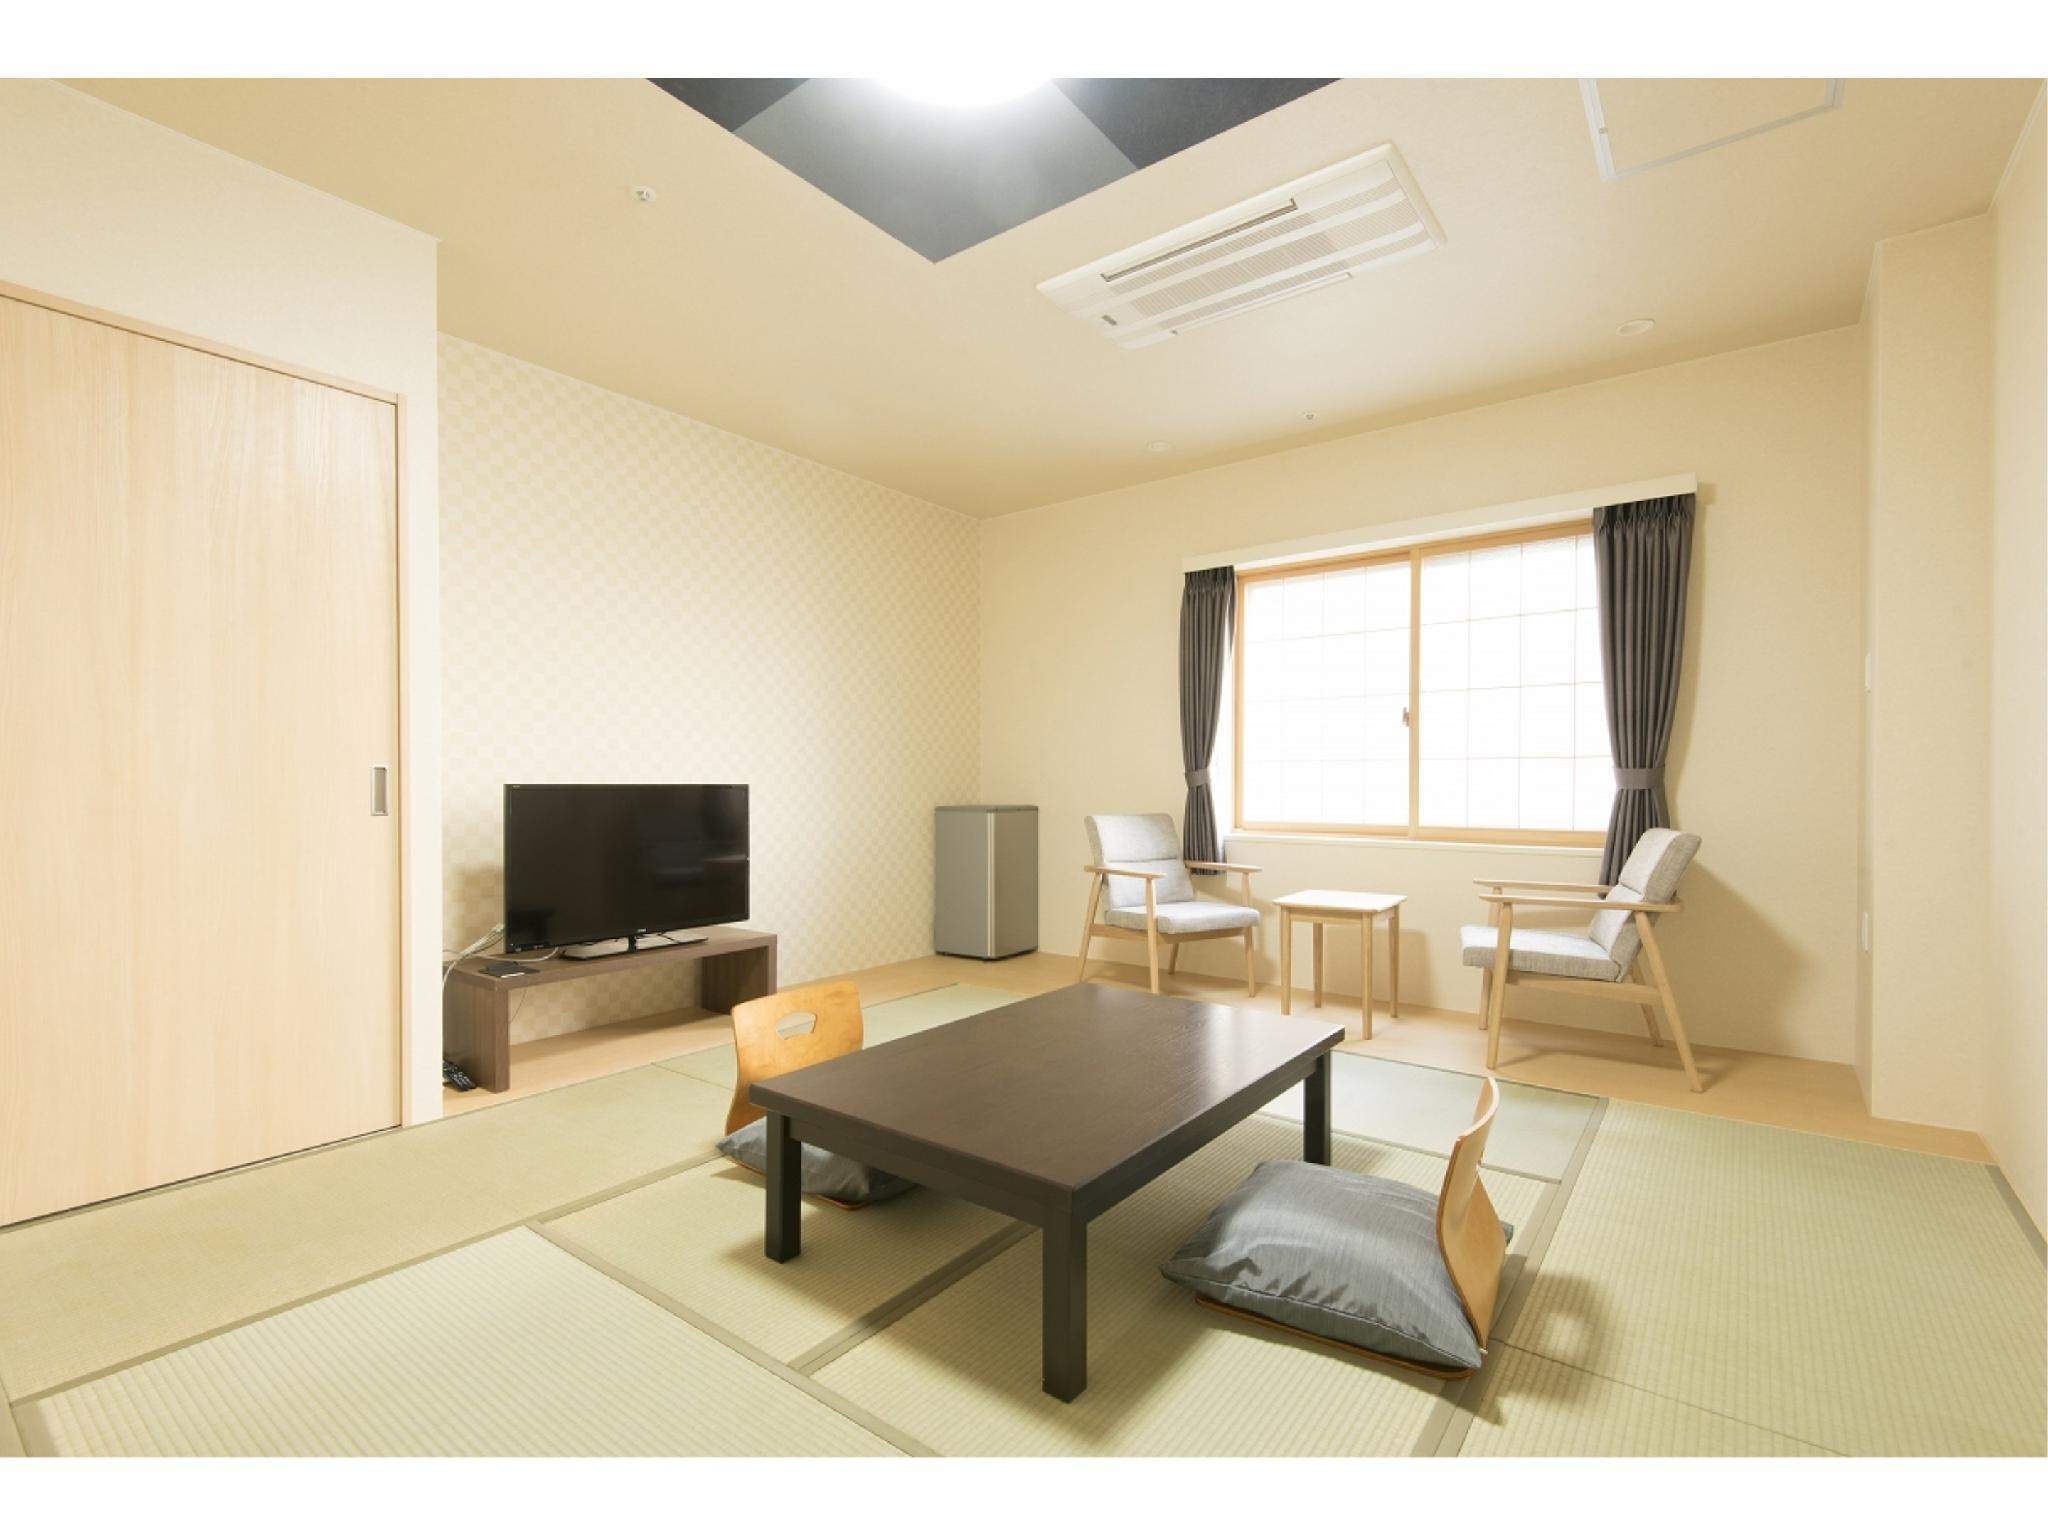 Japanese-style Room (Gaia Type) *Refurbished March 2019, No designated view